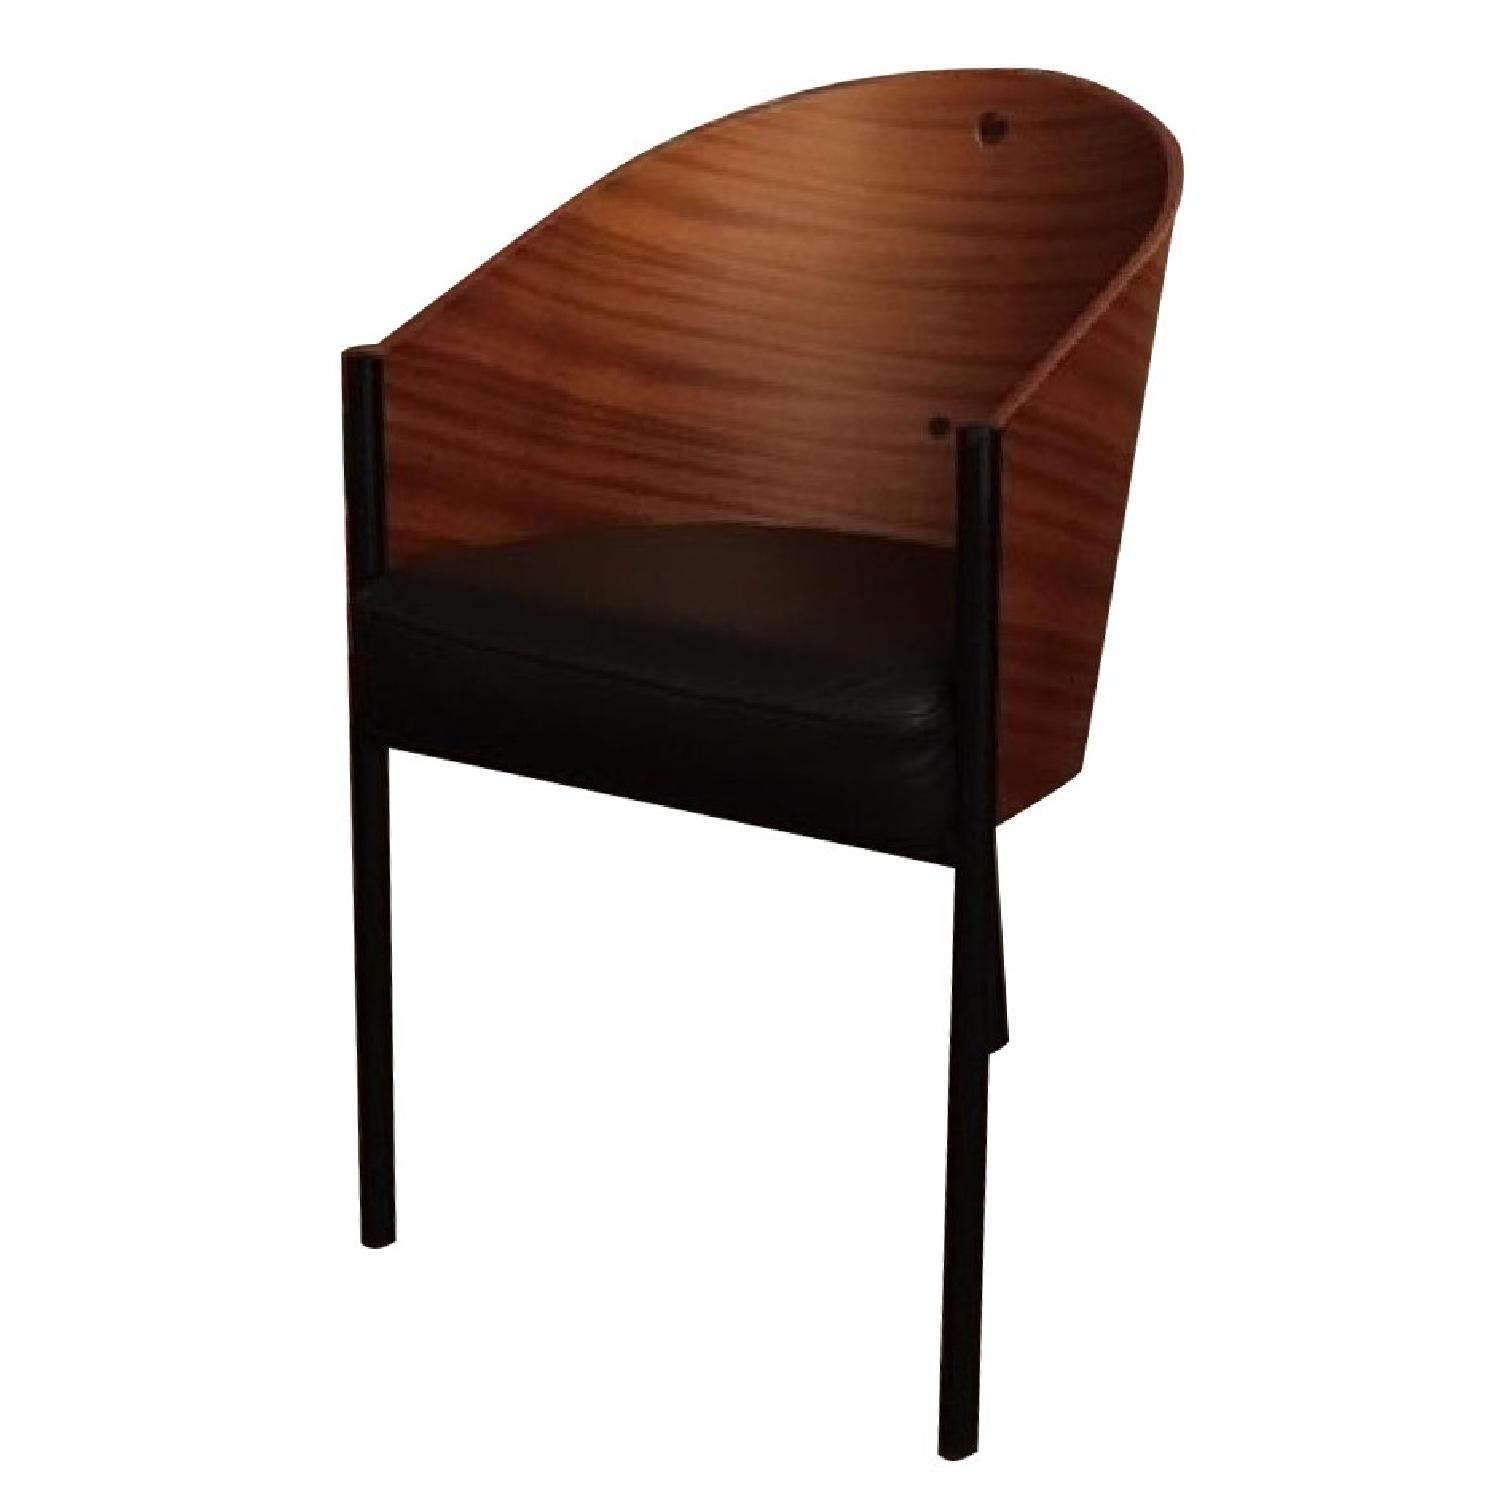 Driade Italy Phillip Stark Costes Chairs - 2 Available - image-0